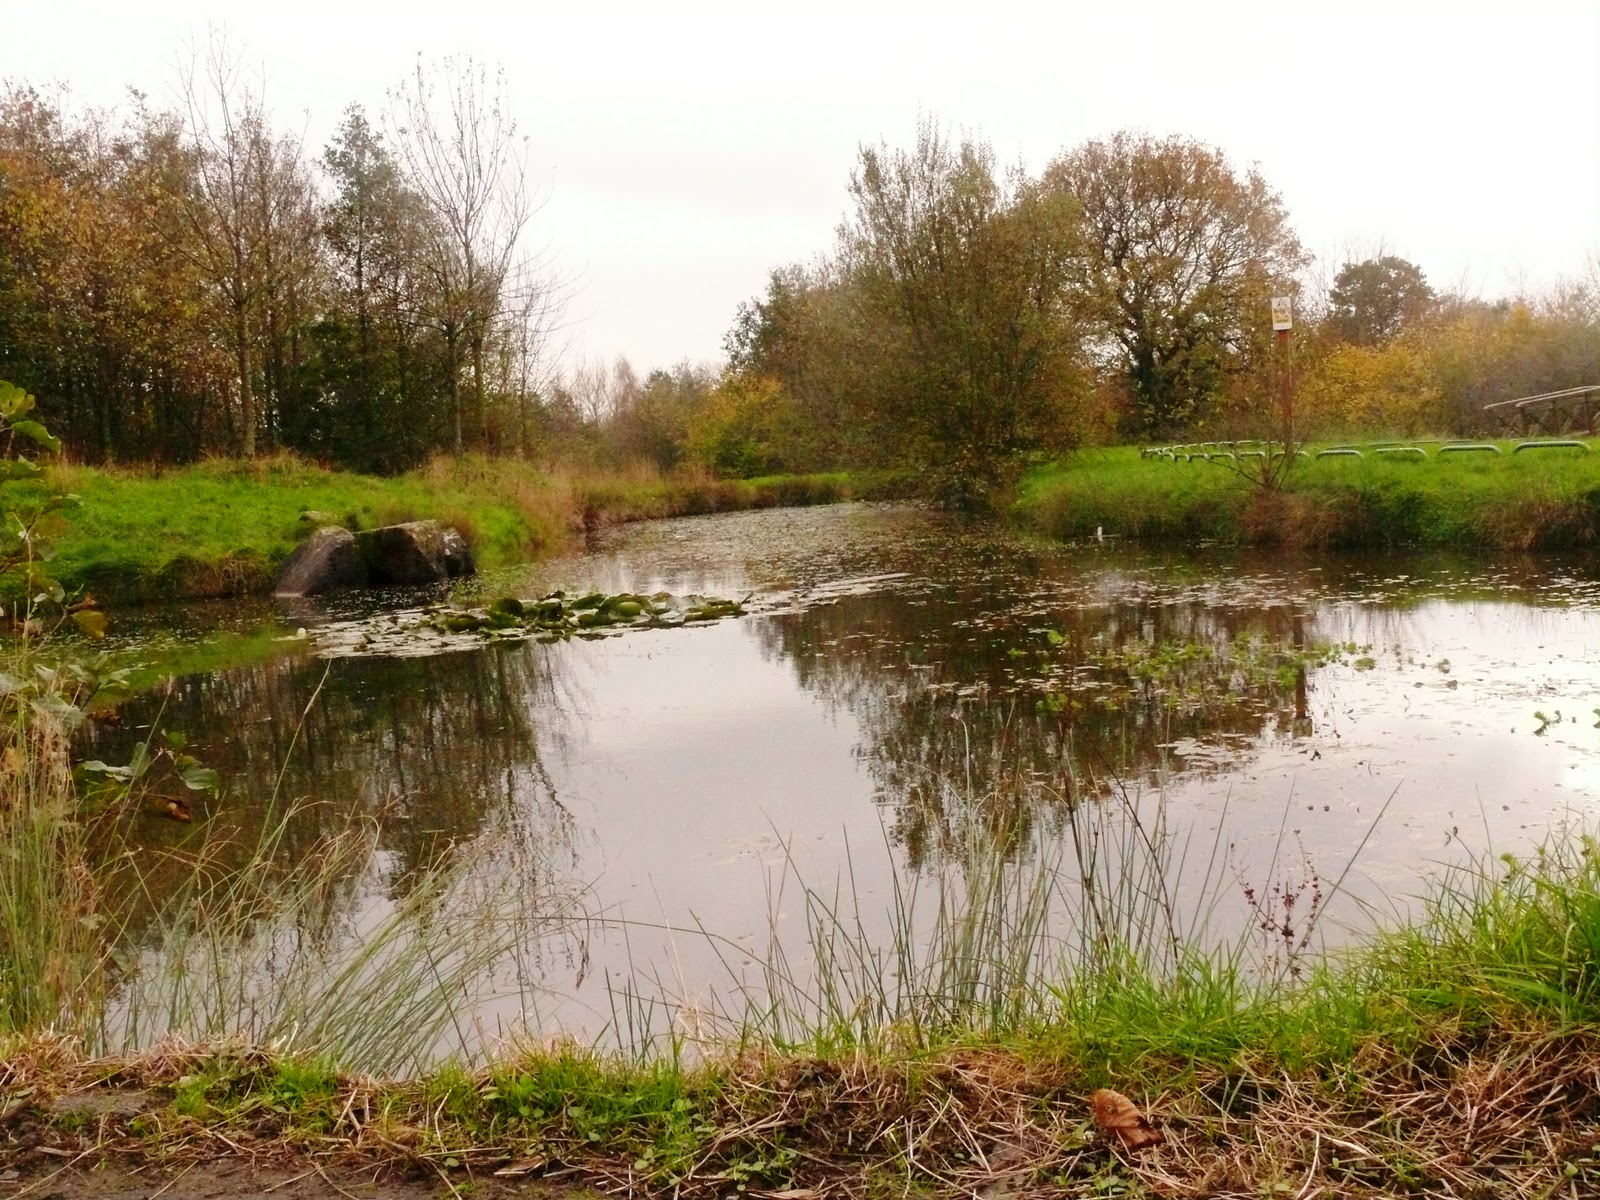 Cottam Conservation What A Network Of Ponds